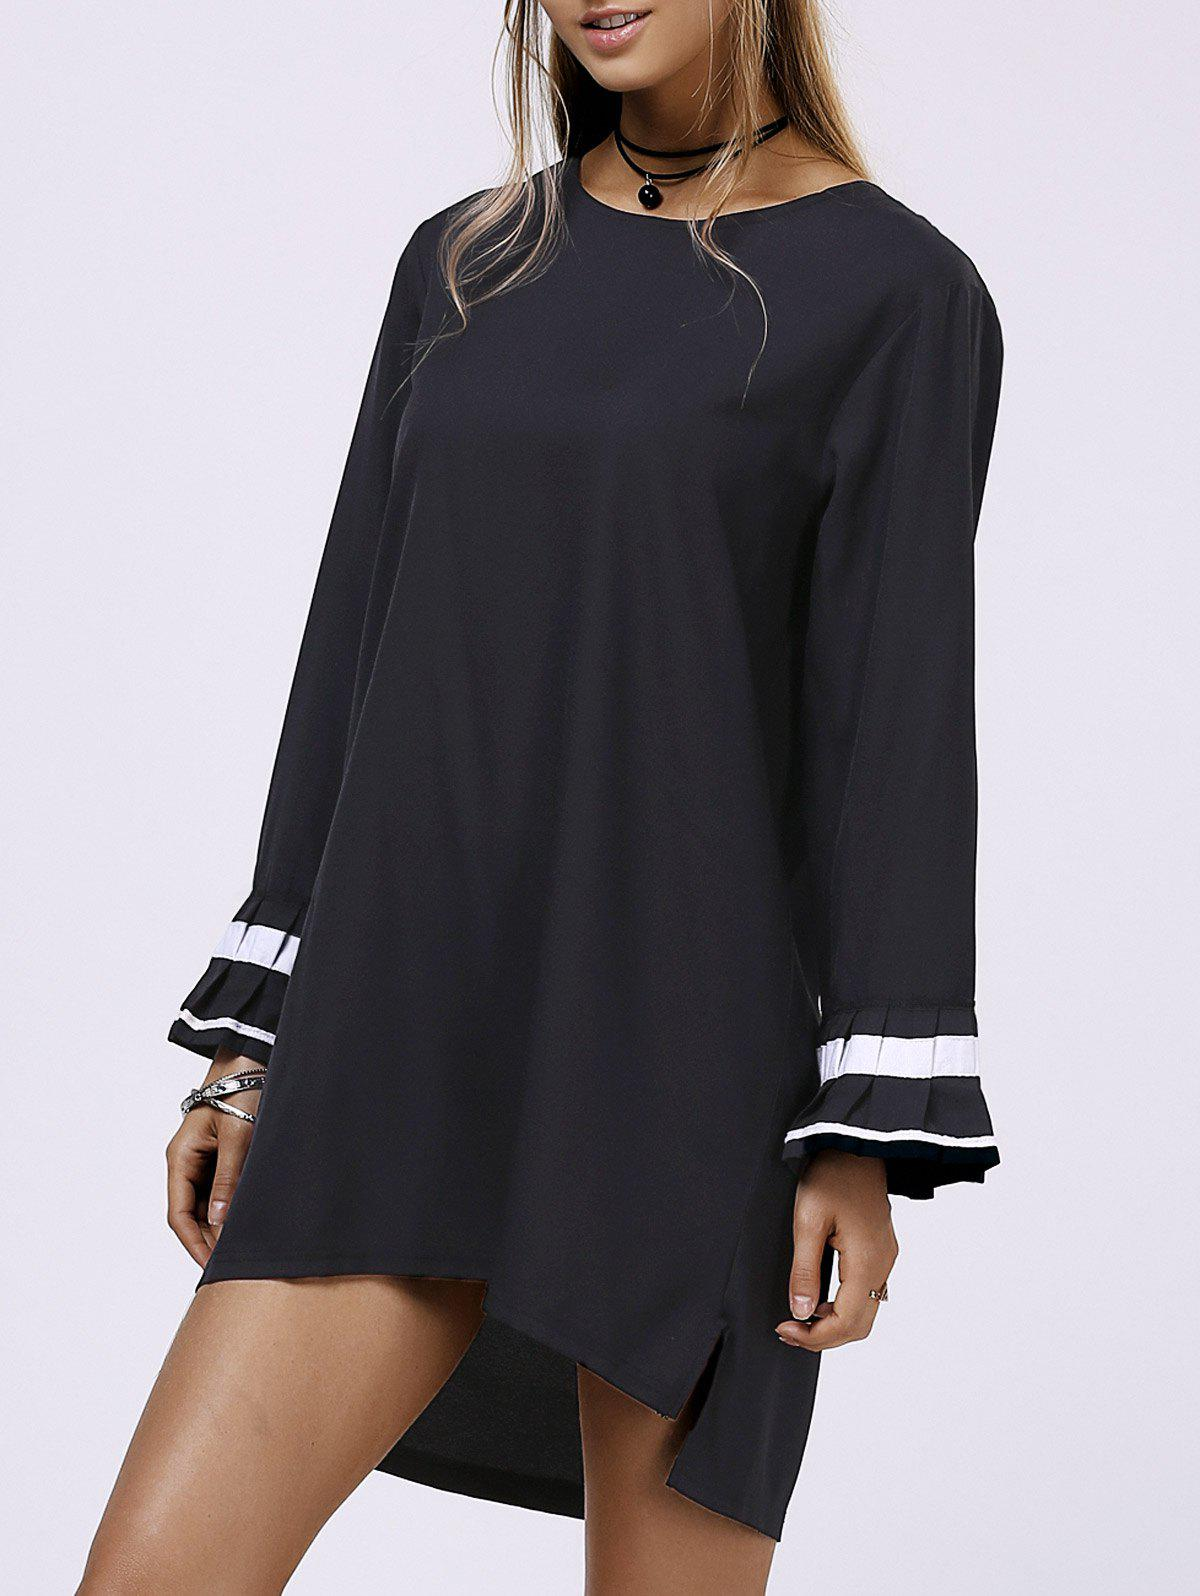 Brief High Low Hem Jewel Neck Plus Size Long Sleeve Dress For Women - BLACK XL